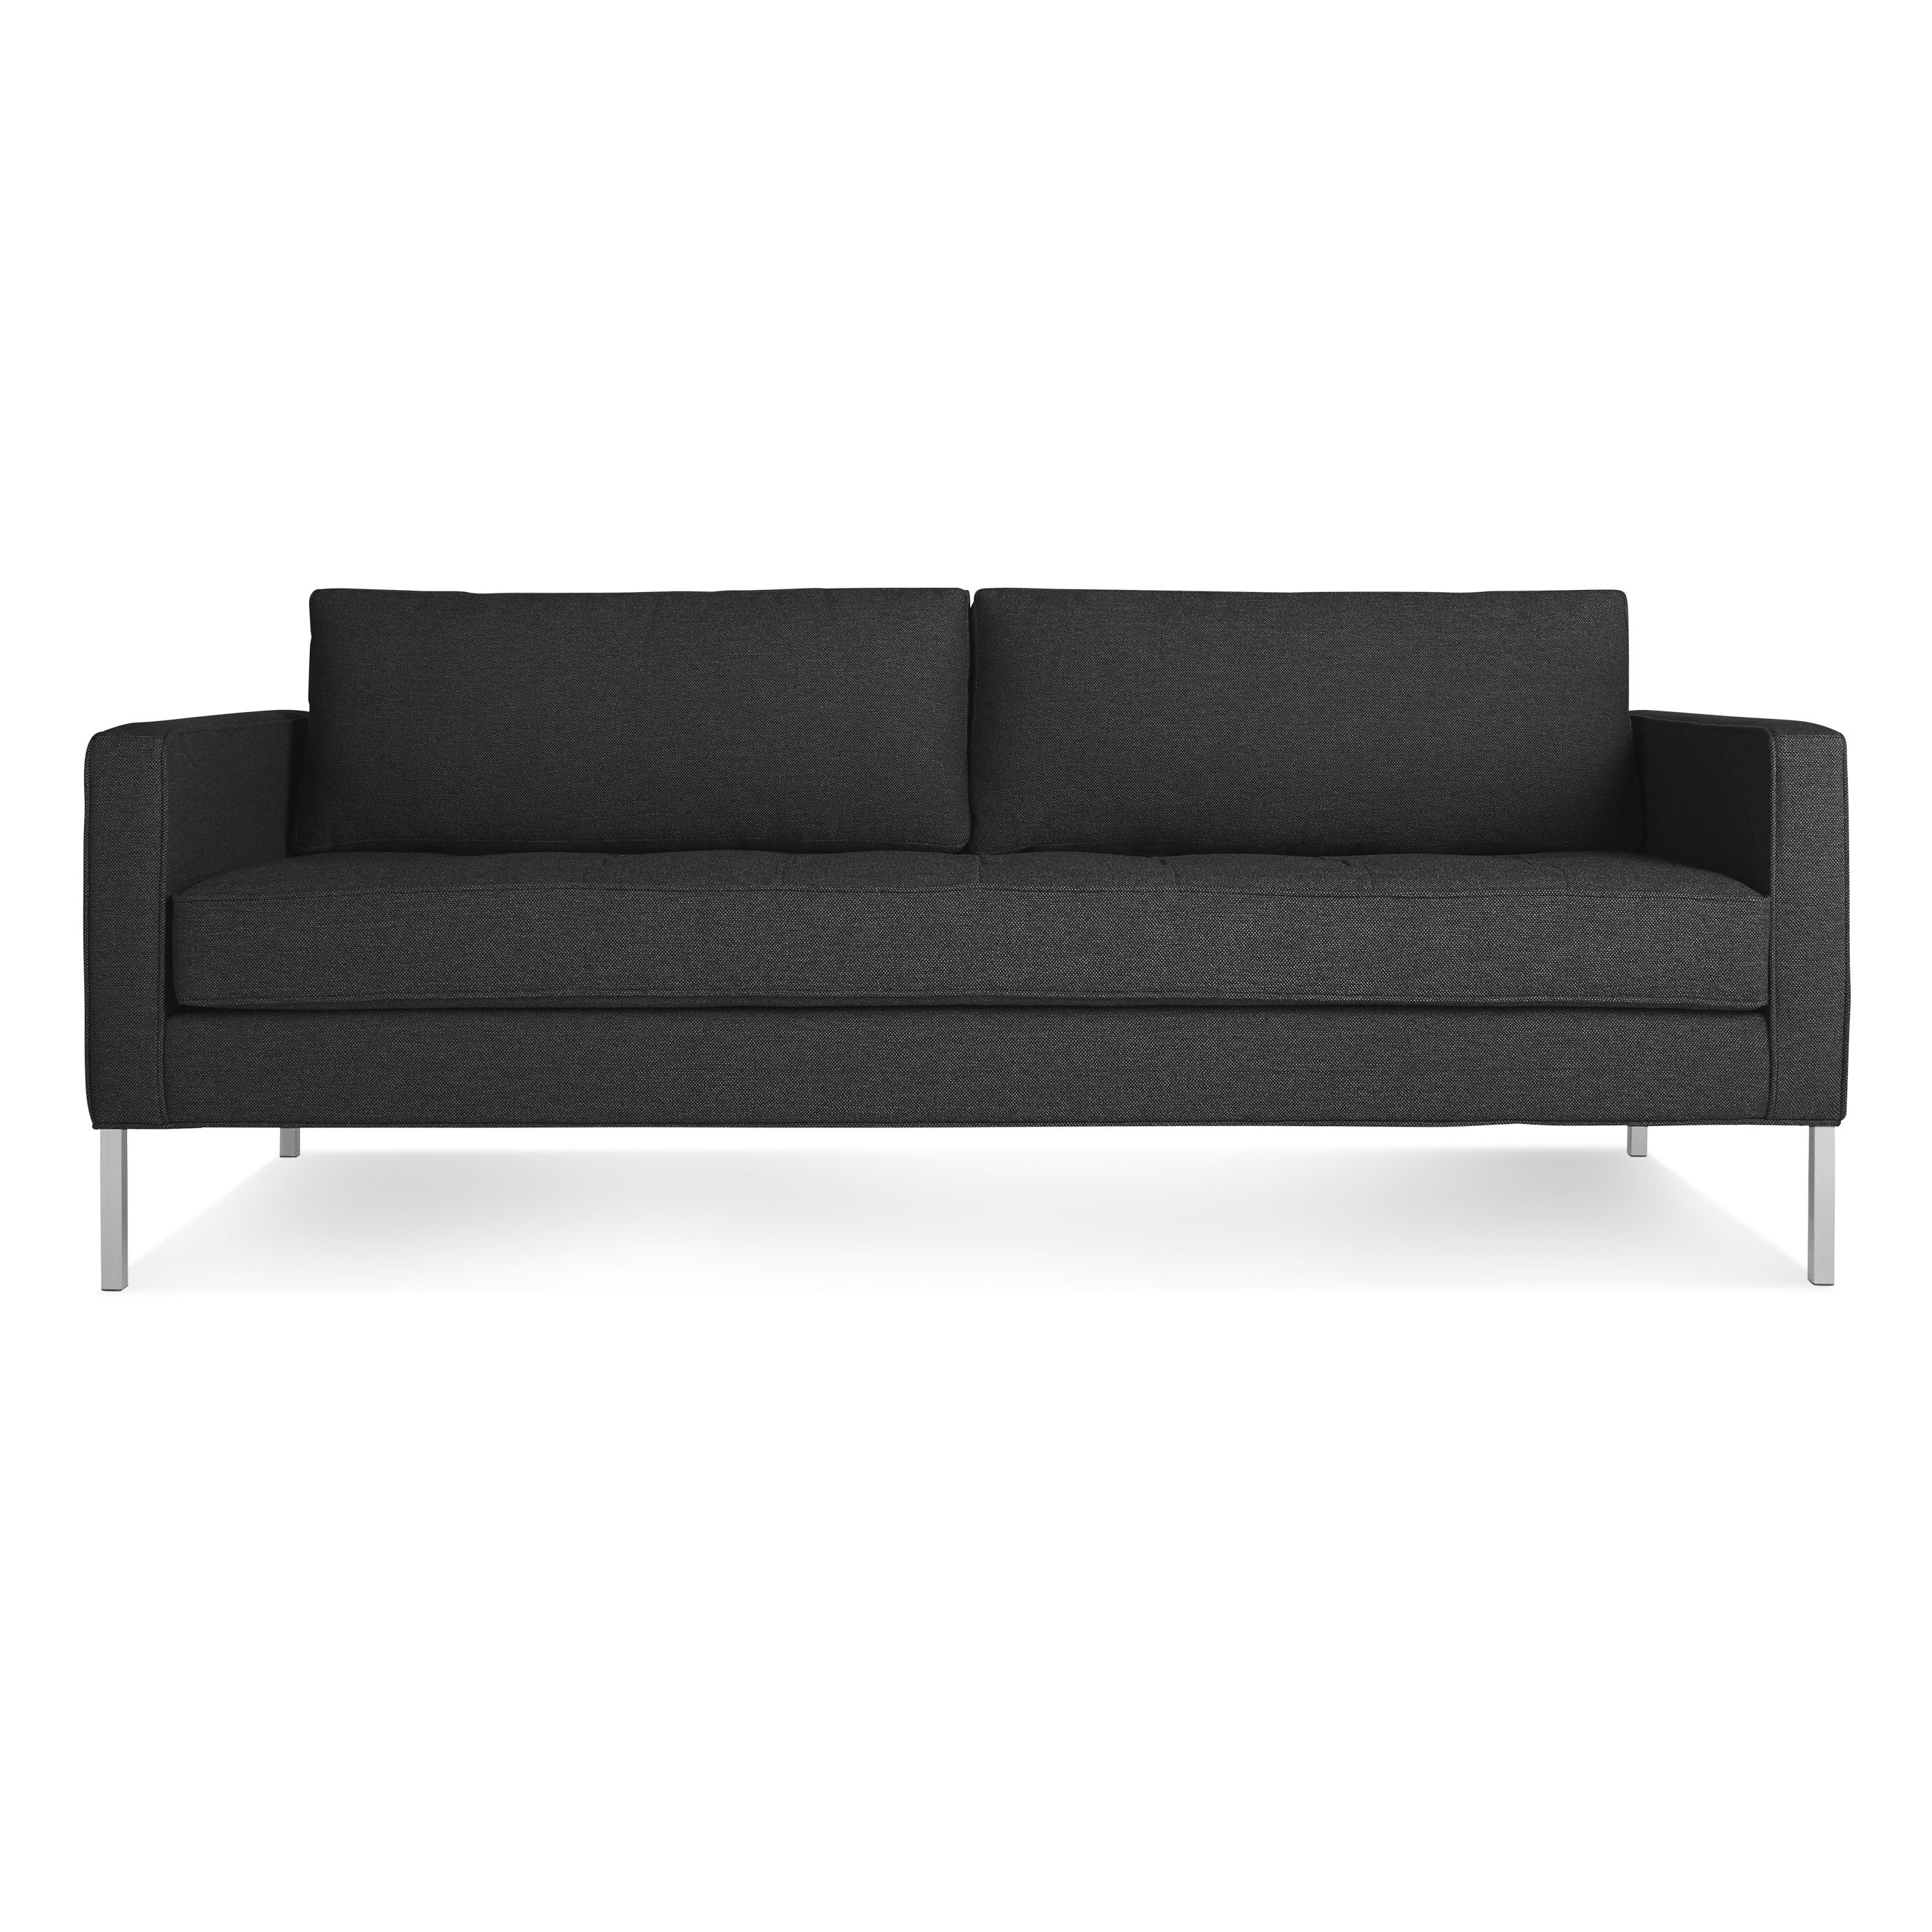 Paramount Medium Sofa - Design Distillery